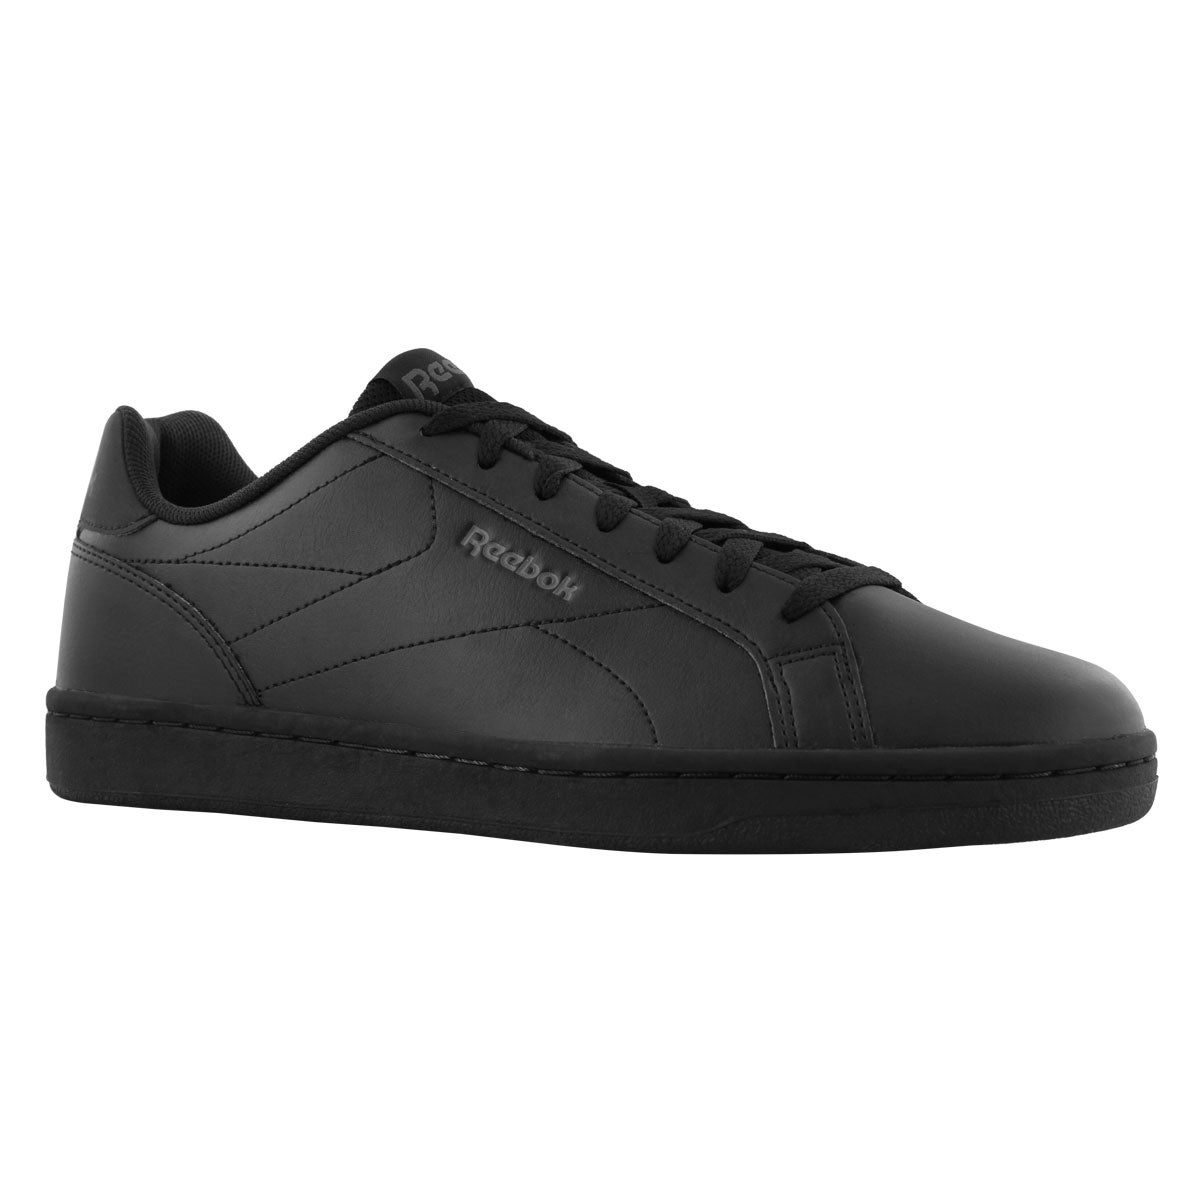 Mns Complete Clean blk/gry fashion snkr